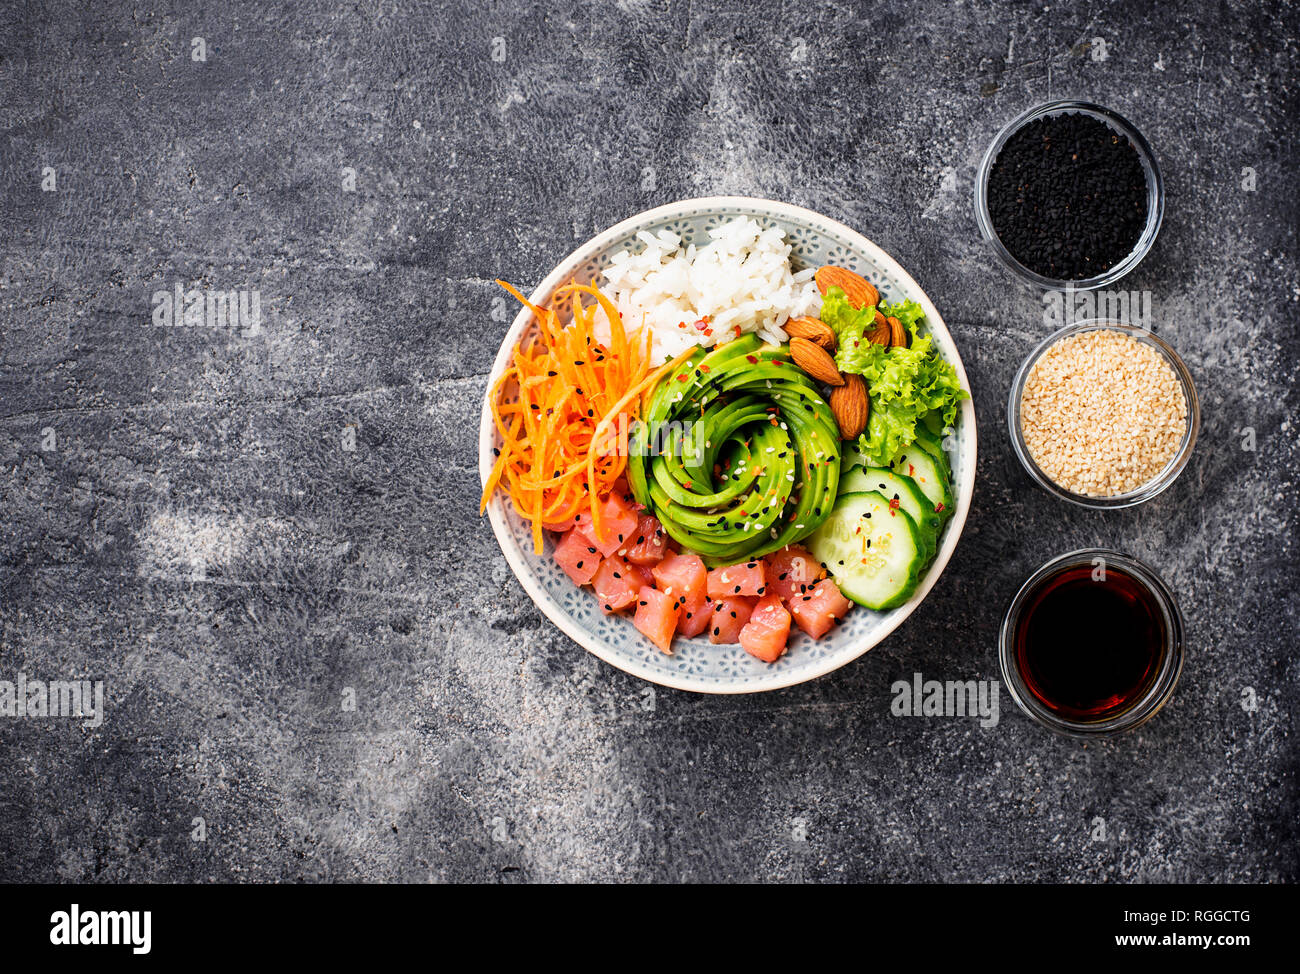 Hawaiian poke bowl with salmon, rice and vegetable - Stock Image